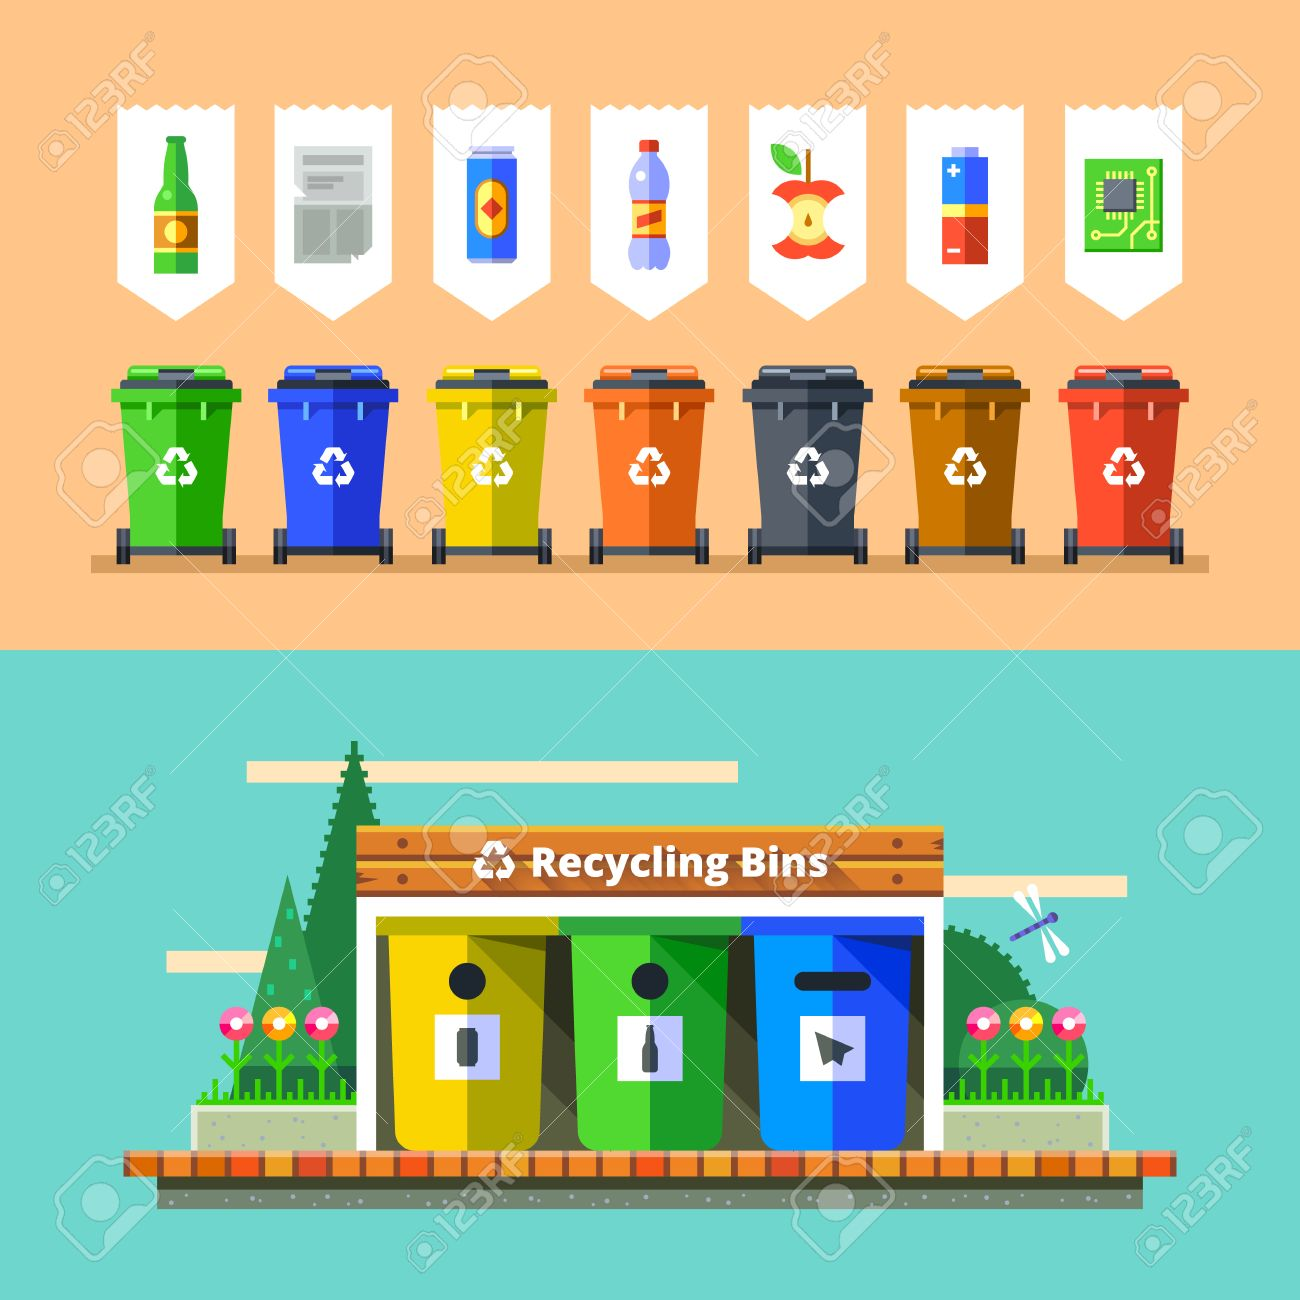 Waste management and recycle concept. Separation of waste on garbage bins. Sorting waste for recycling. Colored garbage cans with waste types. Vector illustration in flat design. - 54030385